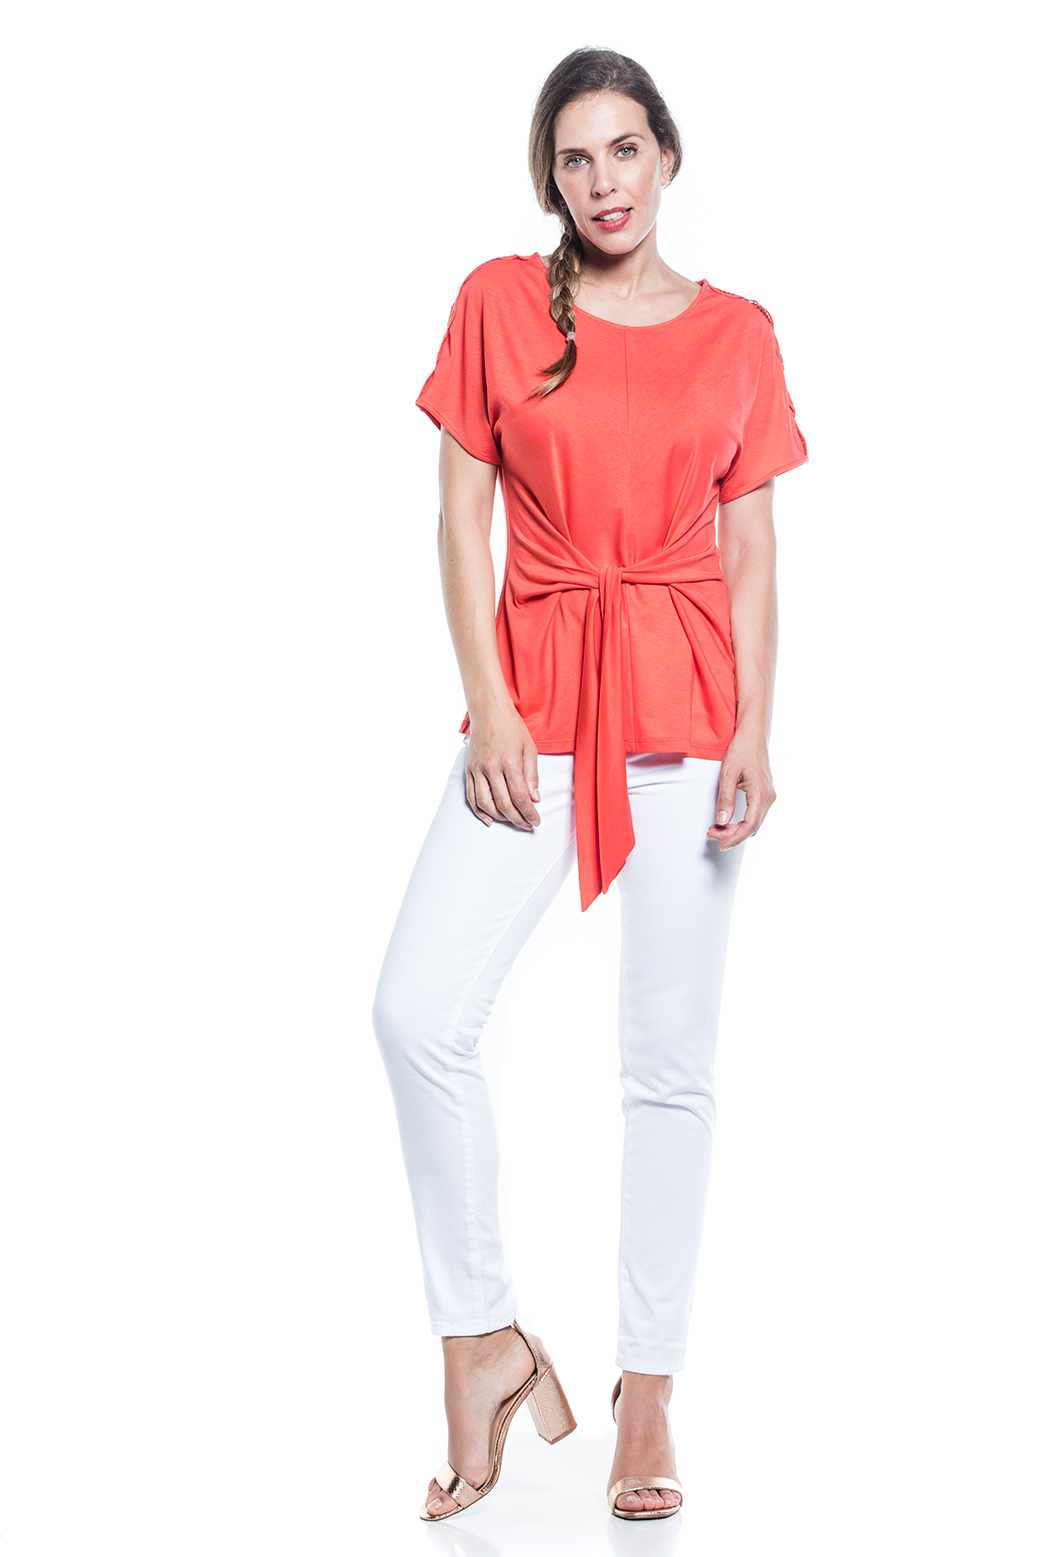 T-shirt with lace on sholders and bellt